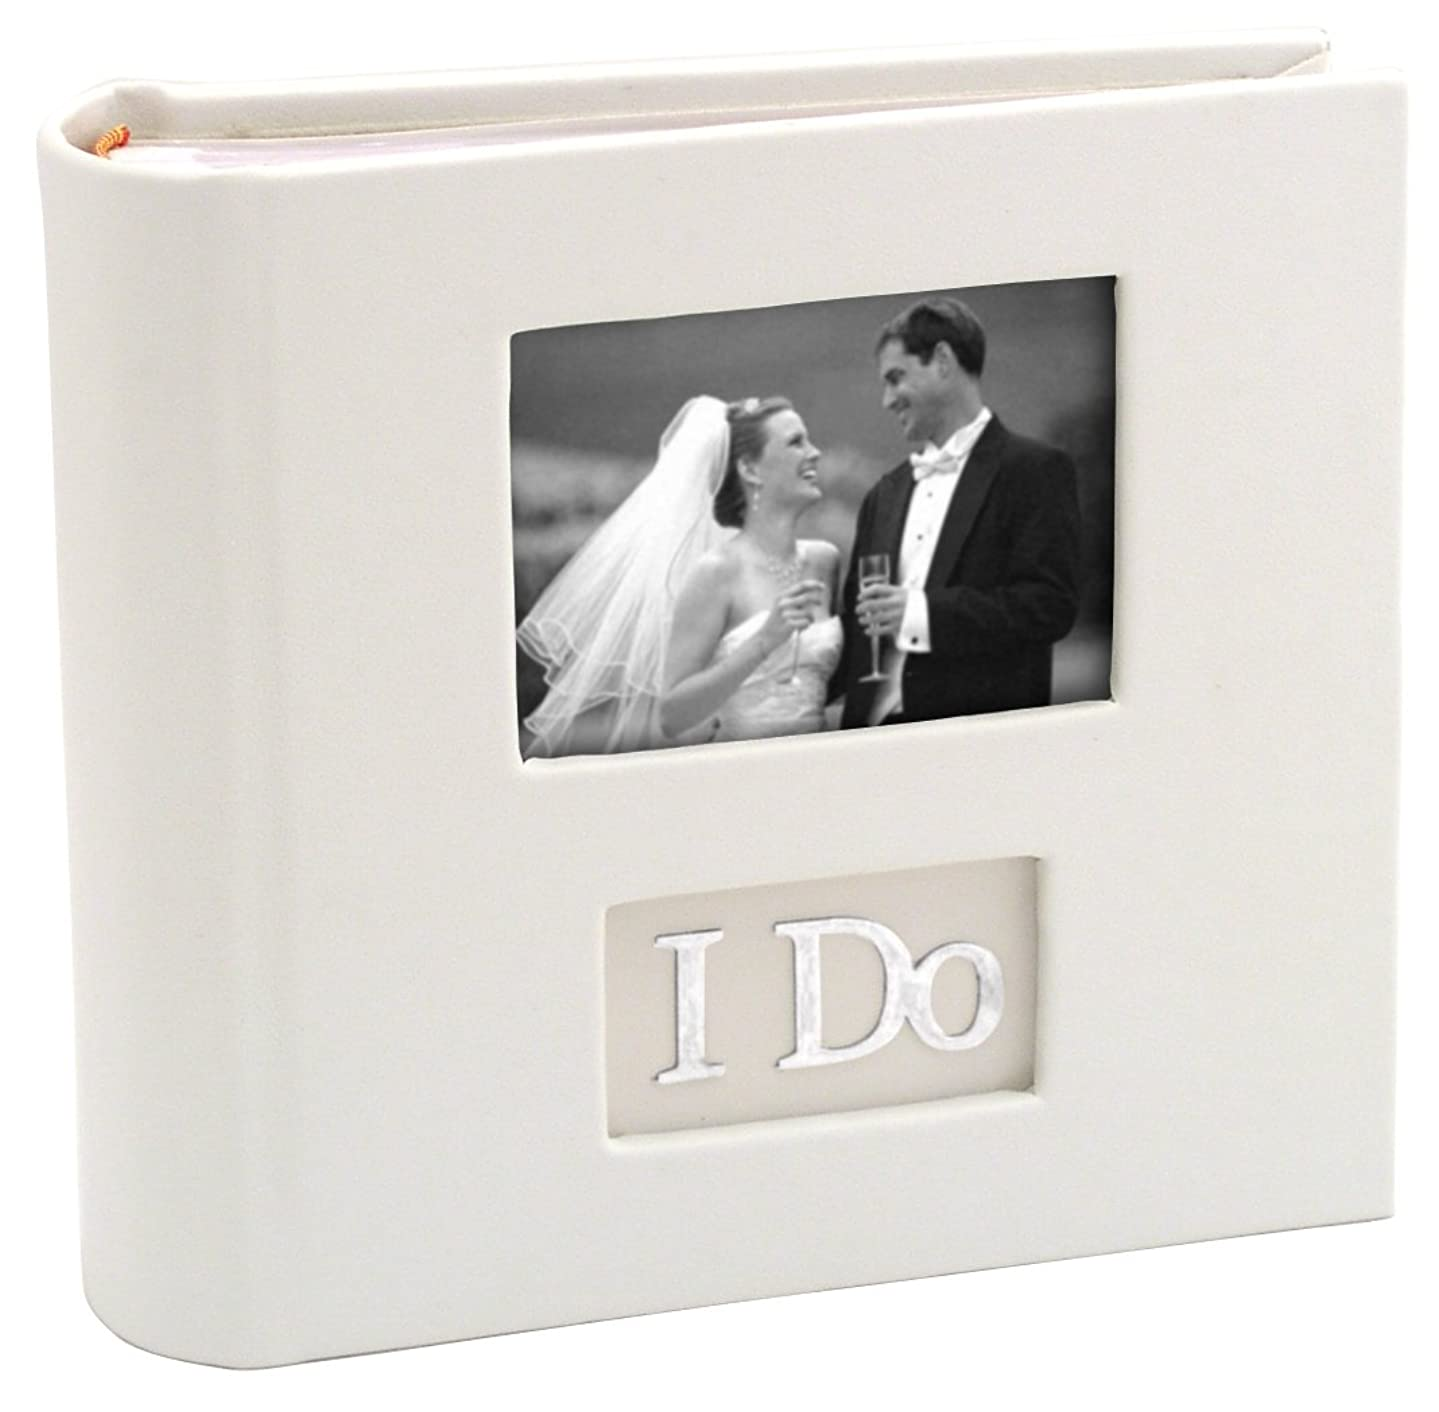 Malden International Designs I Do With Photo Opening Cover & Memo Space Photo Album, 1-Up, 100-4x6, White